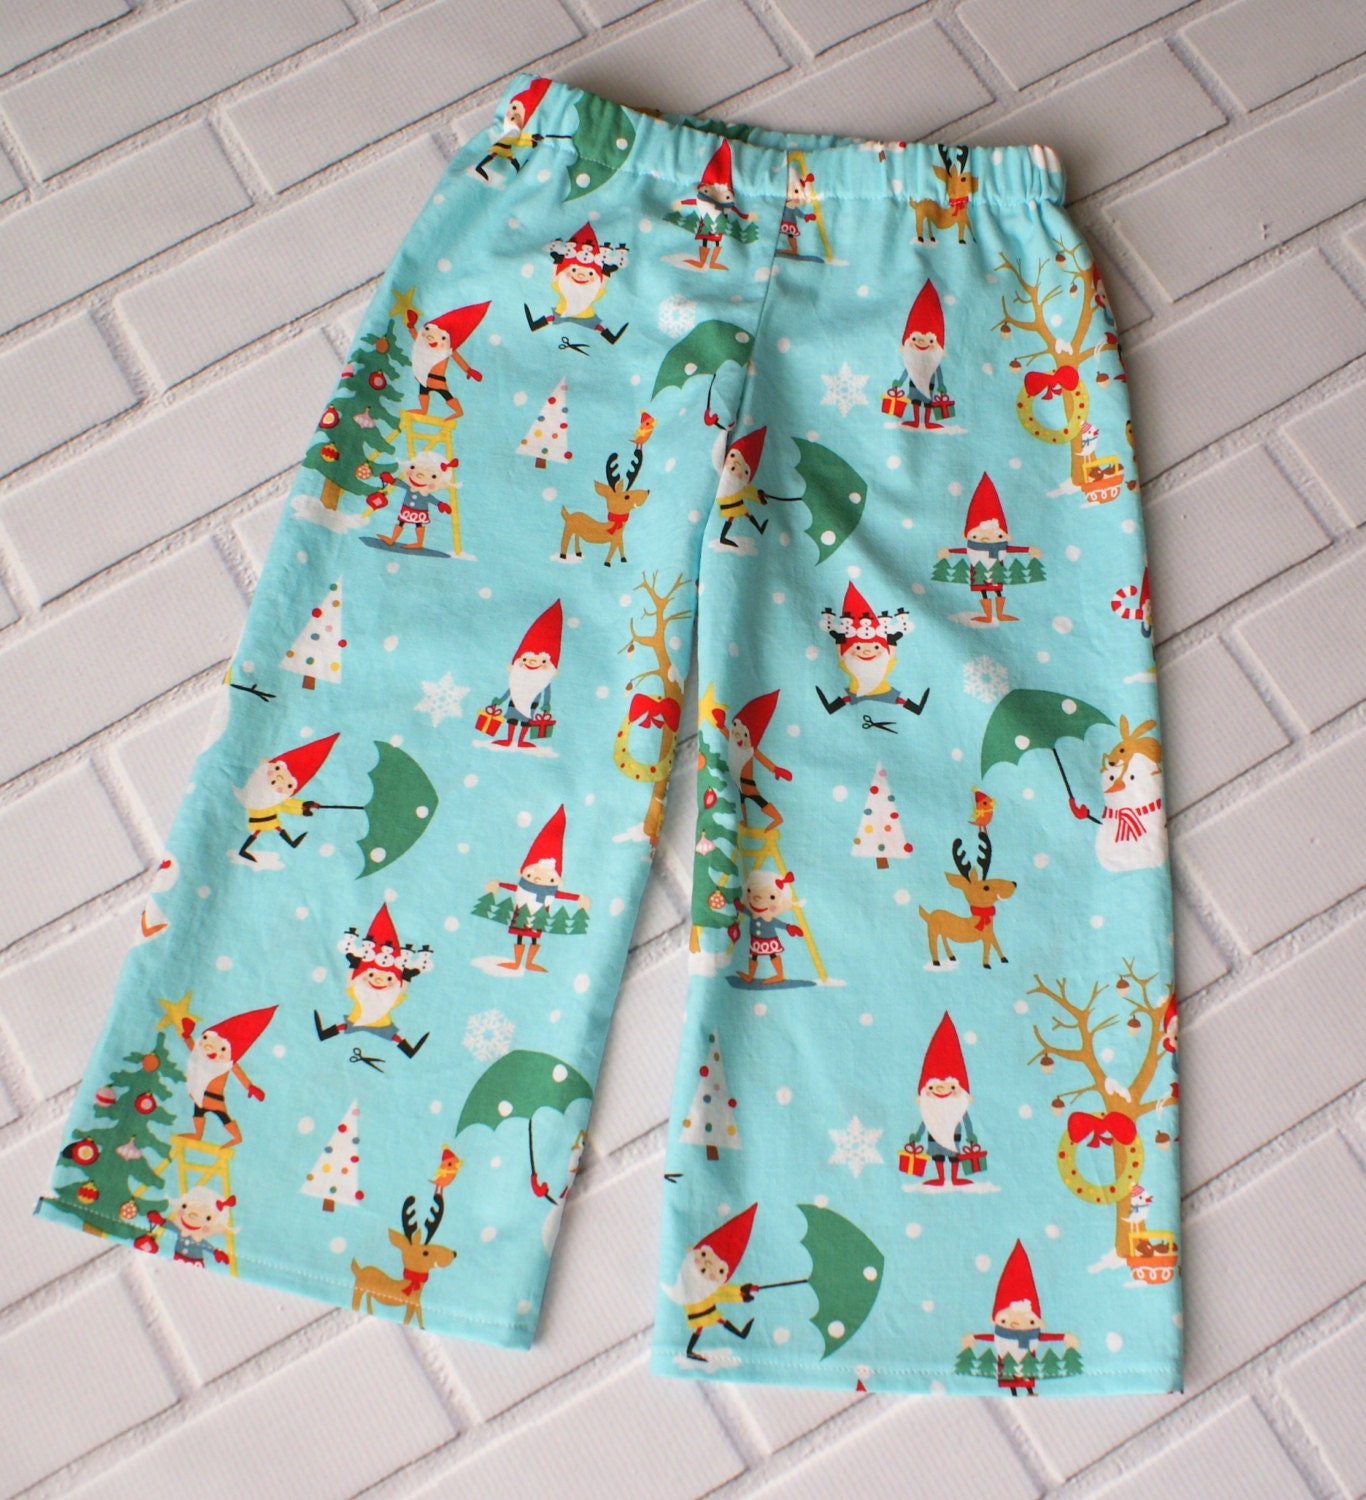 2T Boys Christmas Pants Baby Boy Holiday Clothes Toddler Winter Blue Red Snowman Gnomes Christmas Tree Boutique Clothing By Lucky Lizzy's - LuckyLizzys